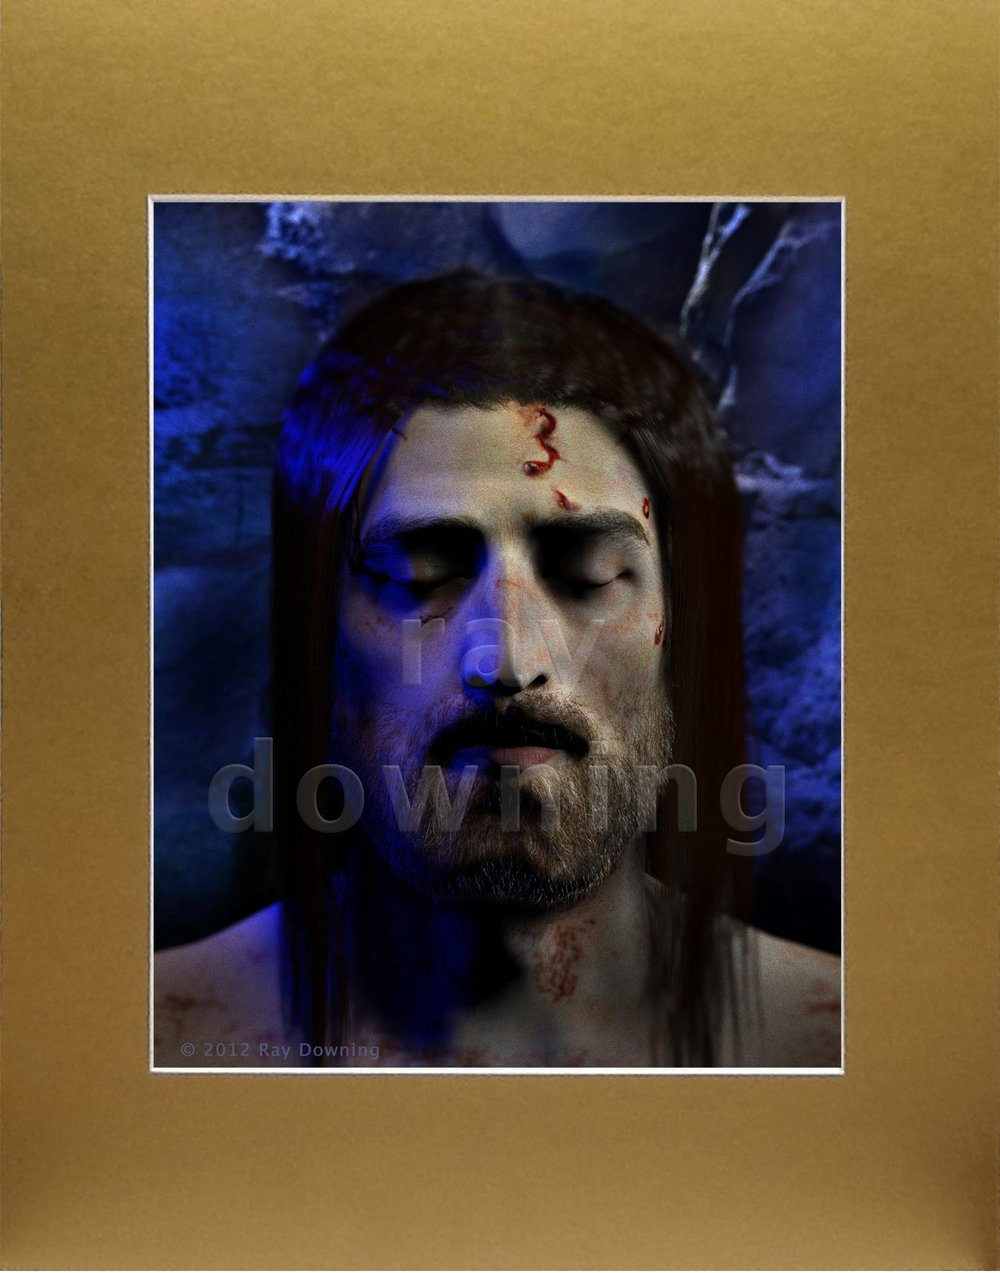 jesus-pictures-shroud-of-turin-death.jpg